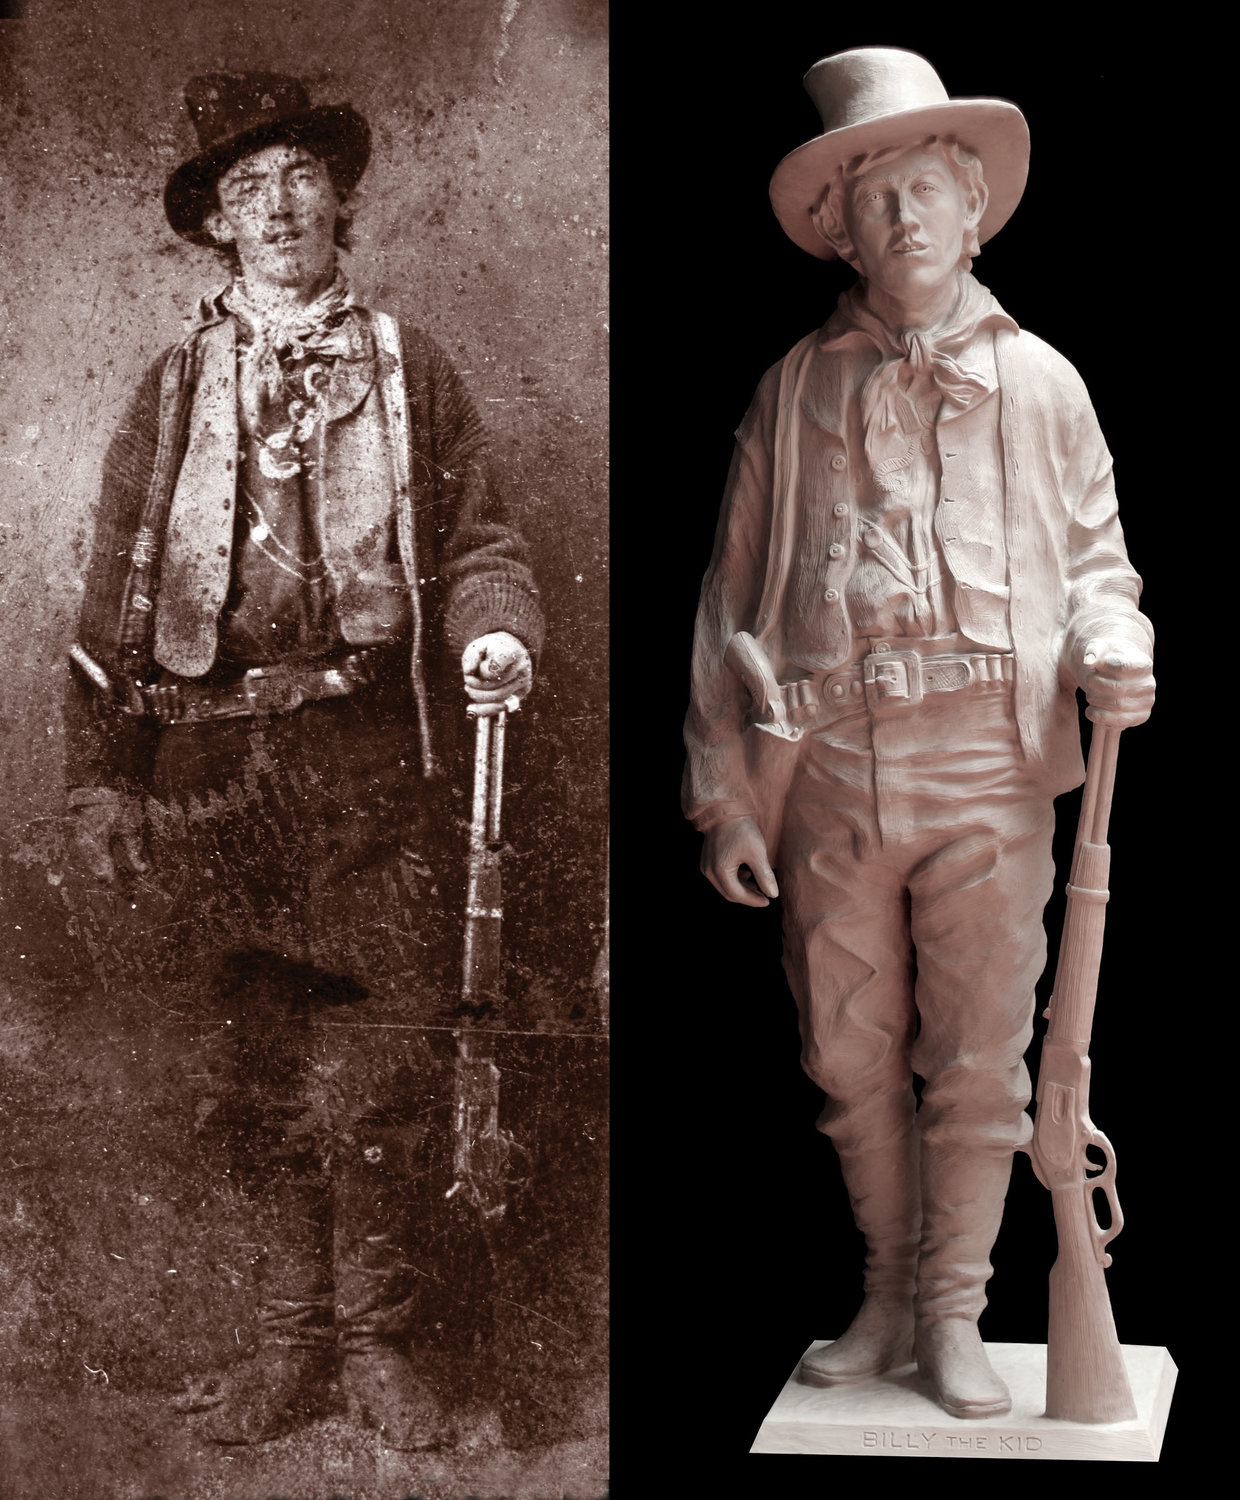 The original tintype of Billy the Kid and Diven.